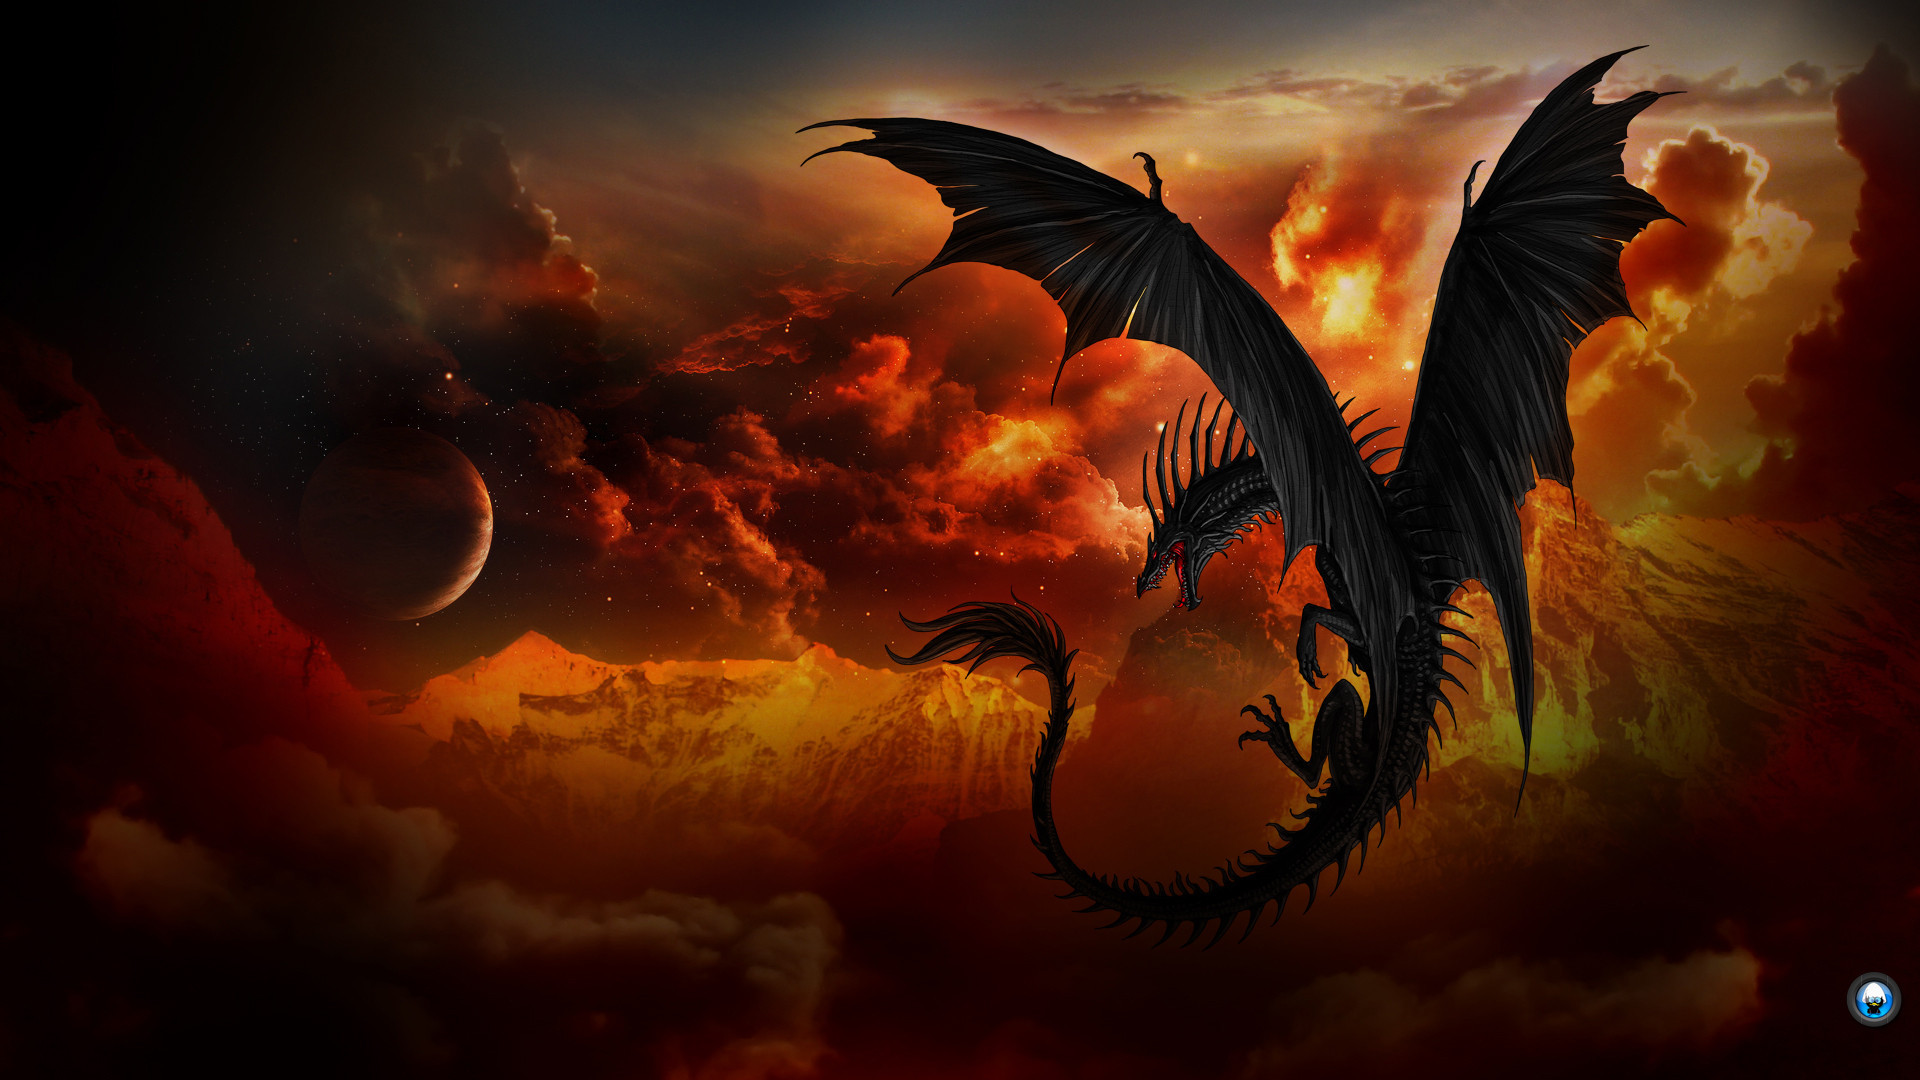 1920x1080 Dragon HD Wallpapers Backgrounds Wallpaper Dragon Backgrounds For Desktop  Wallpapers)